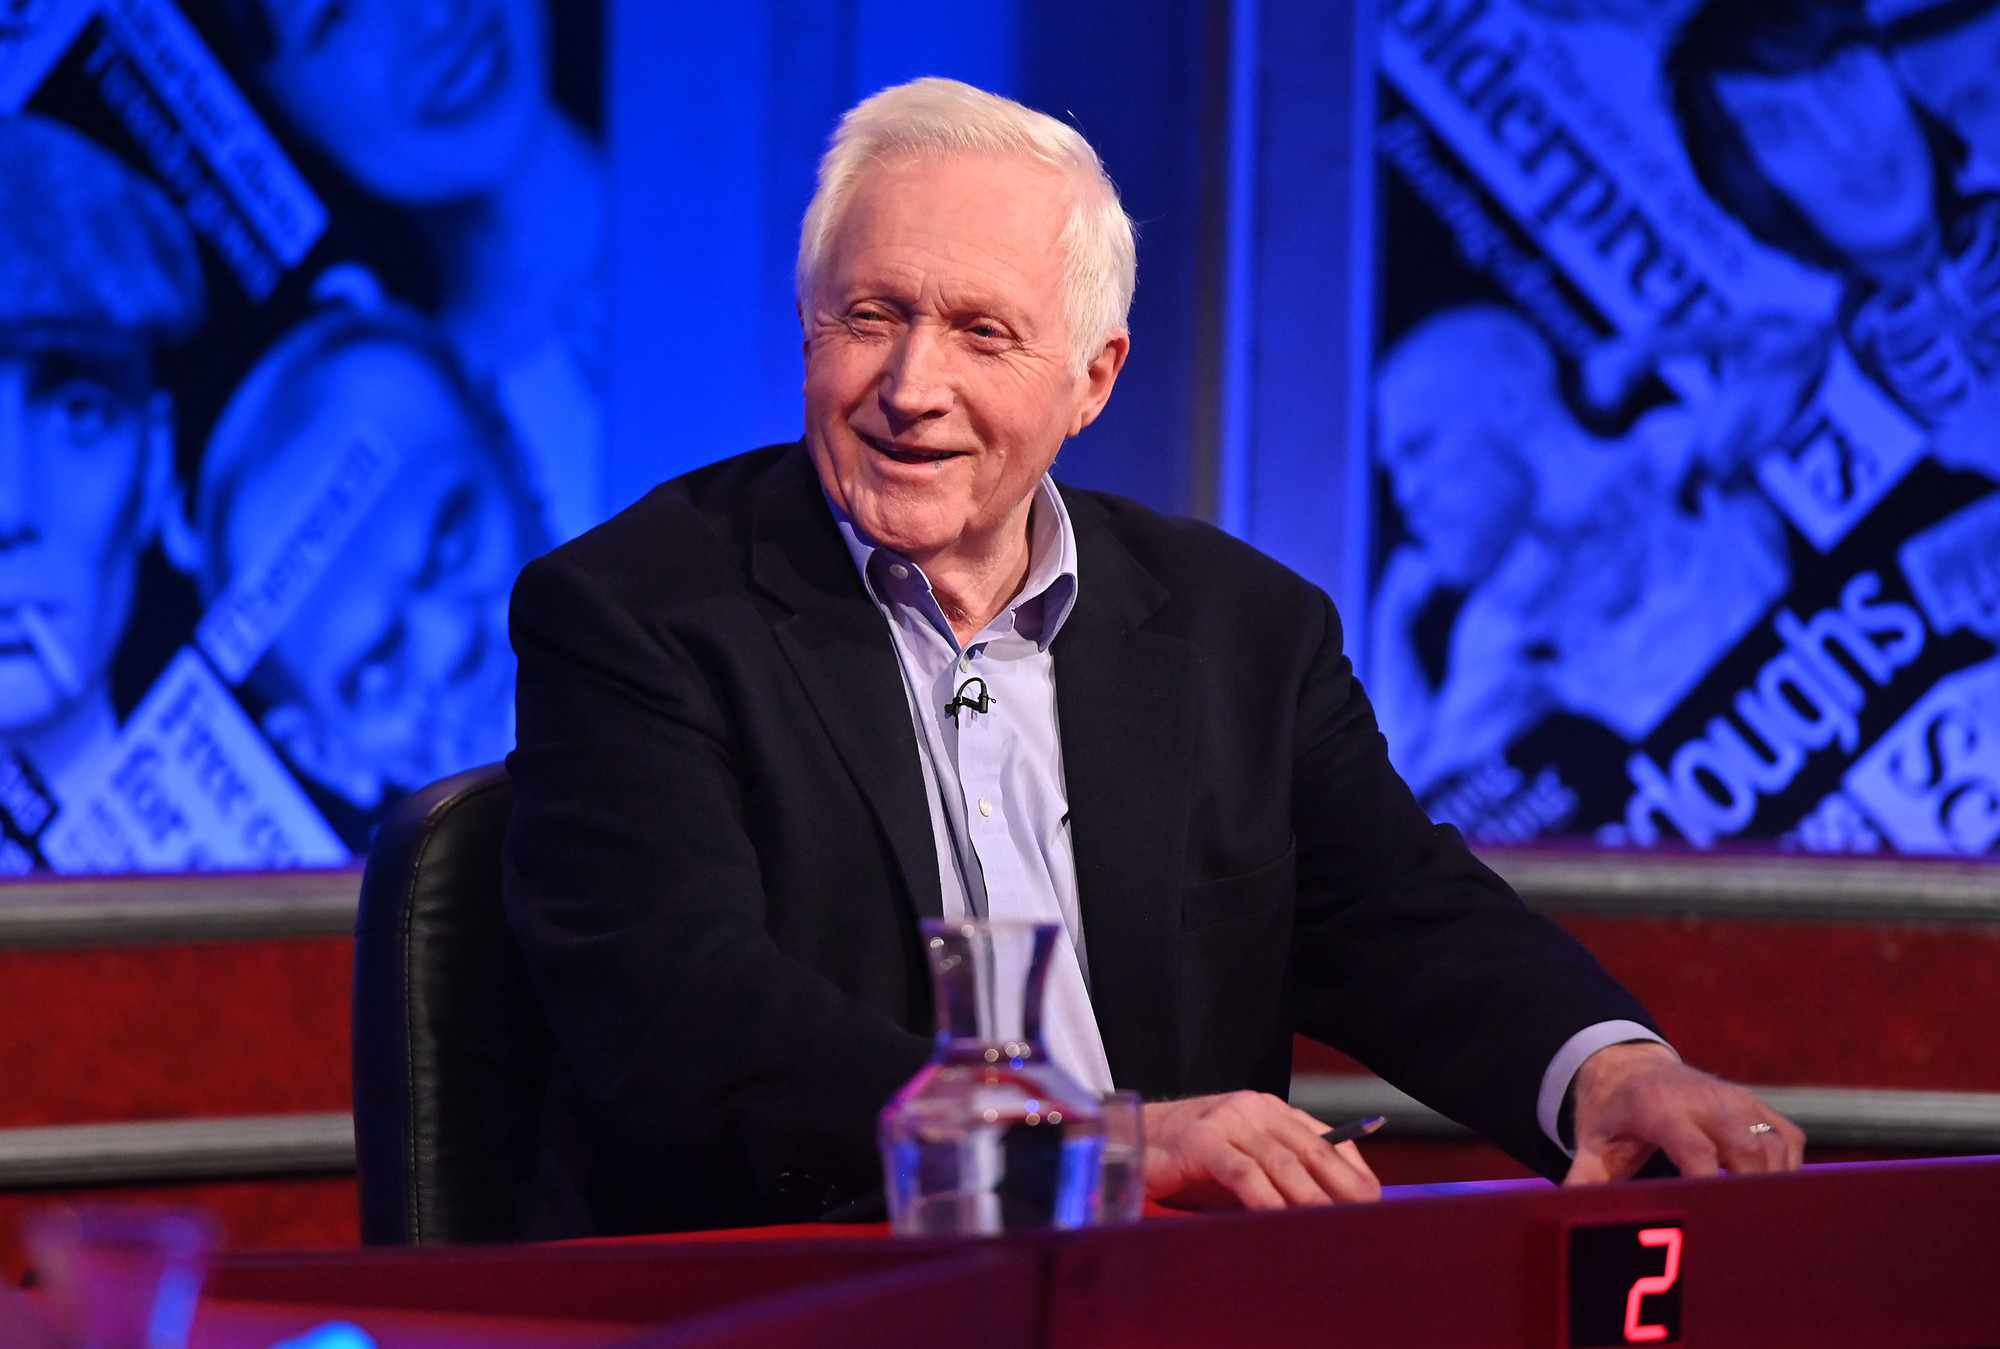 David Dimbleby hosts Have I Got News For You (Hat Trick Productions)